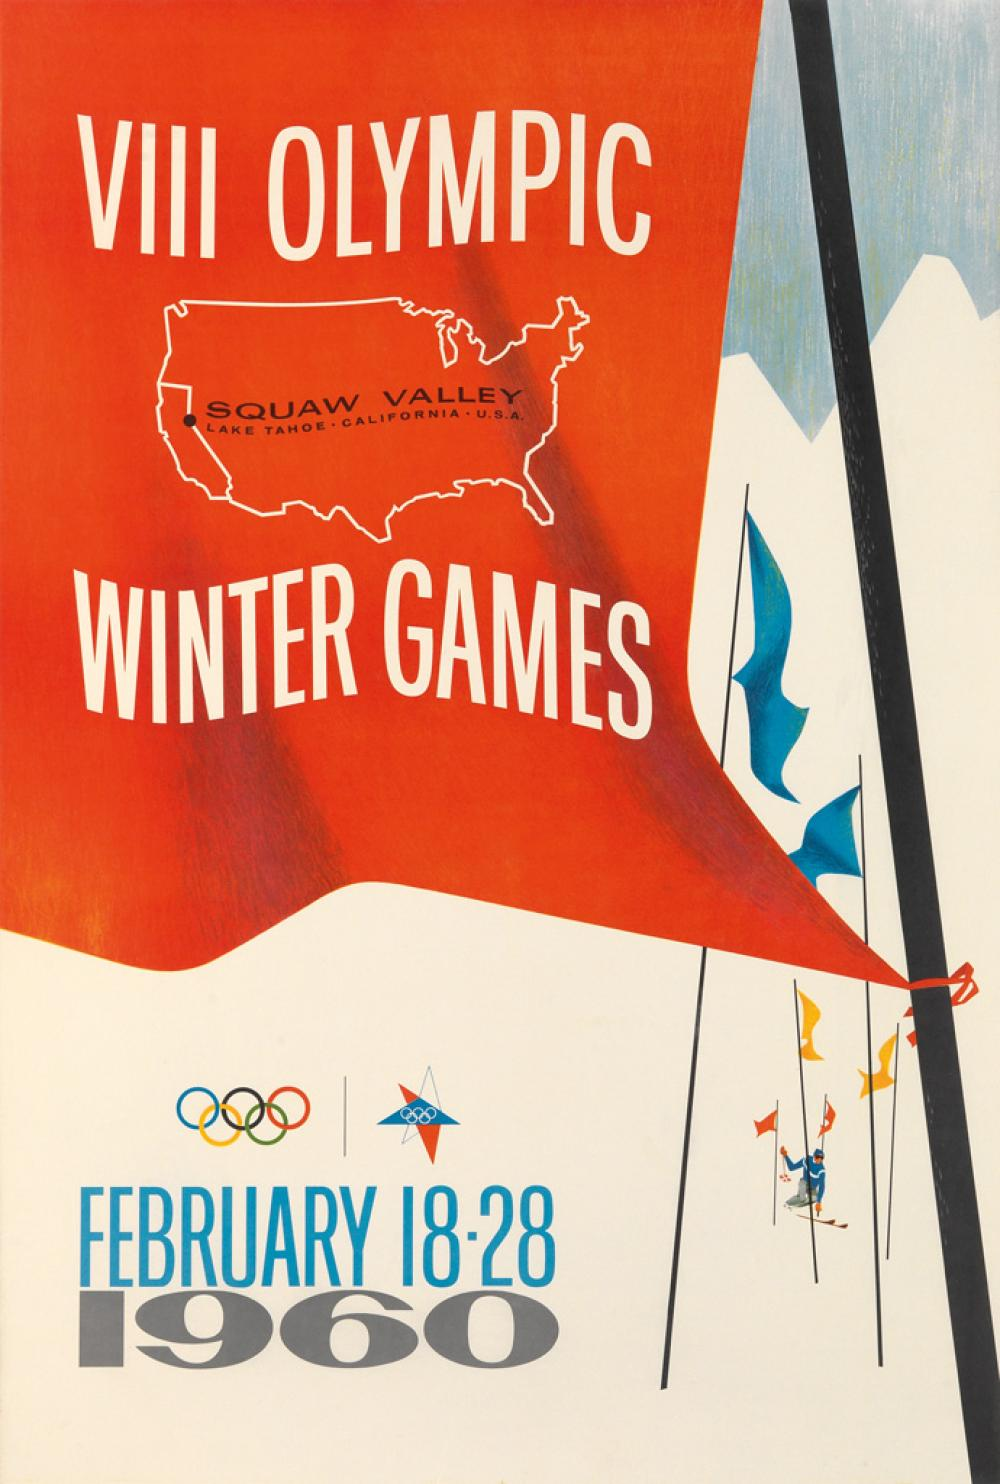 DESIGNER UNKNOWN. VIII OLYMPIC WINTER GAMES / SQUAW VALLEY. 1960. 35x24 inches, 90x61 cm.